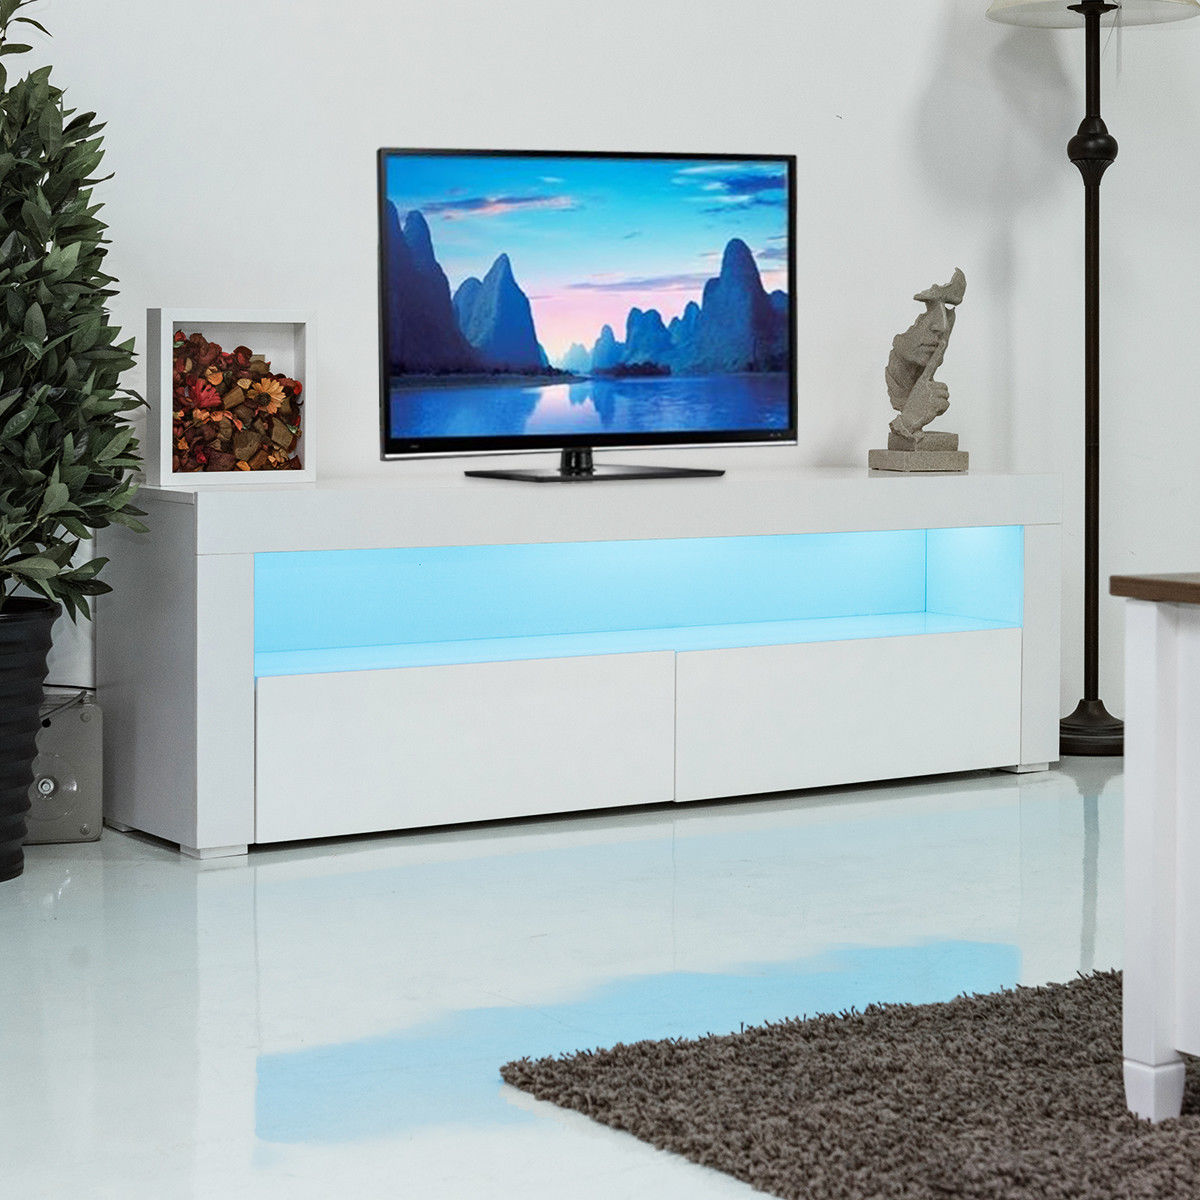 Relieving Ledshelves Giantex Living Room Tv Stand Unit Cabinet Console Furniture Drawers Tv Stand Living Roomcabinets From Giantex Living Room Tv Stand Unit Cabinet Console Furniture Led